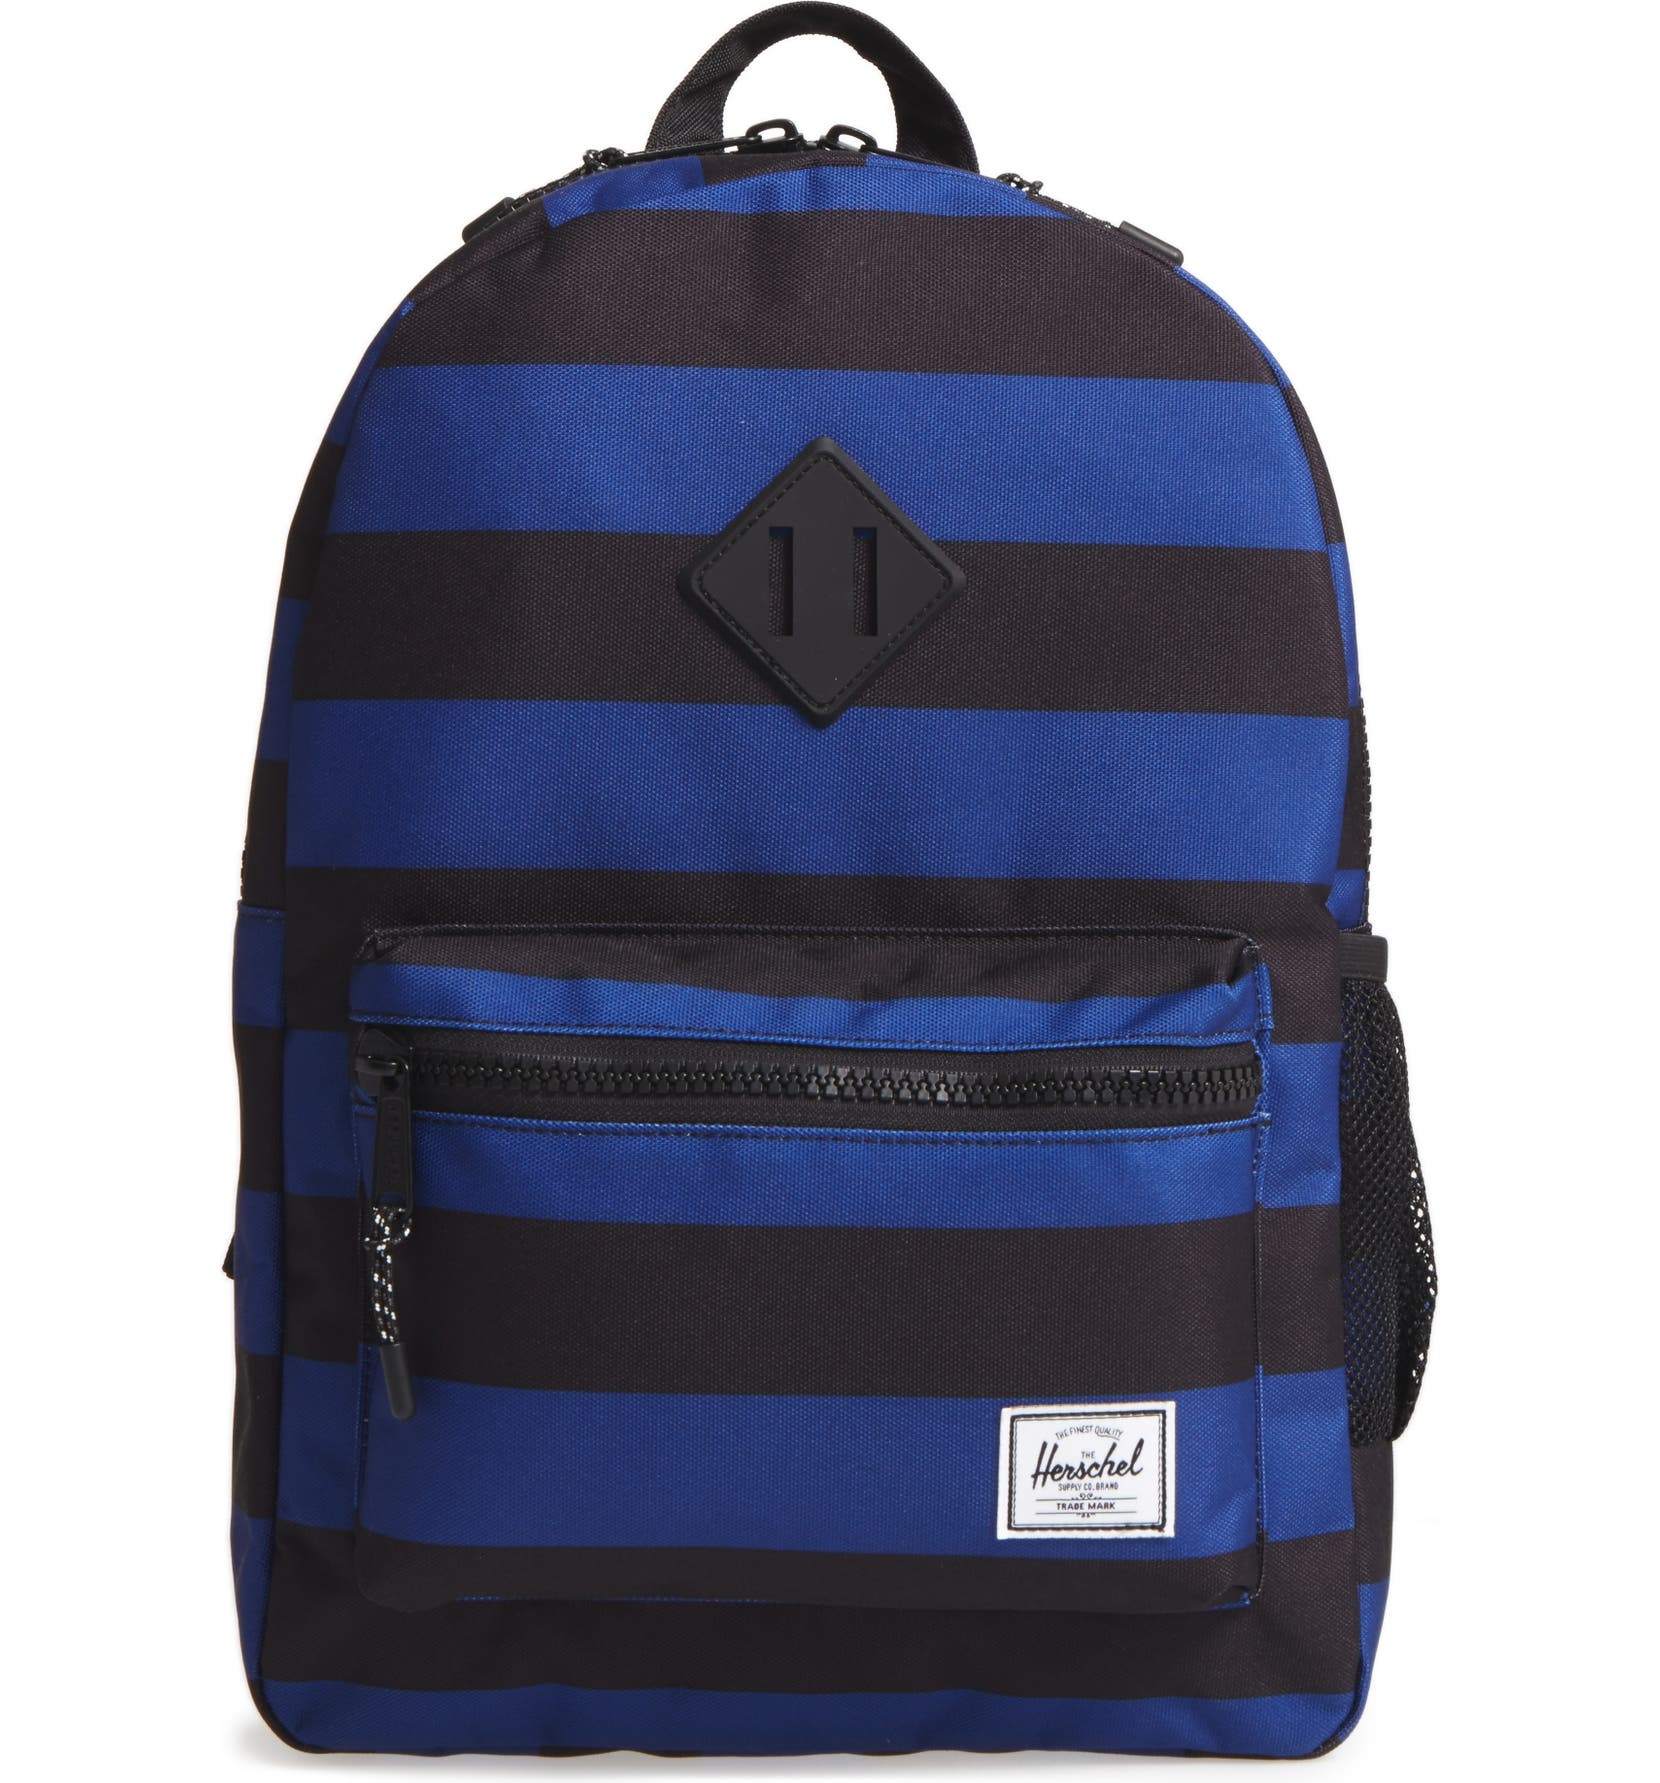 Herschel Supply Co. Heritage Youth Backpack (Kids)  dbe8ca46c9b6a